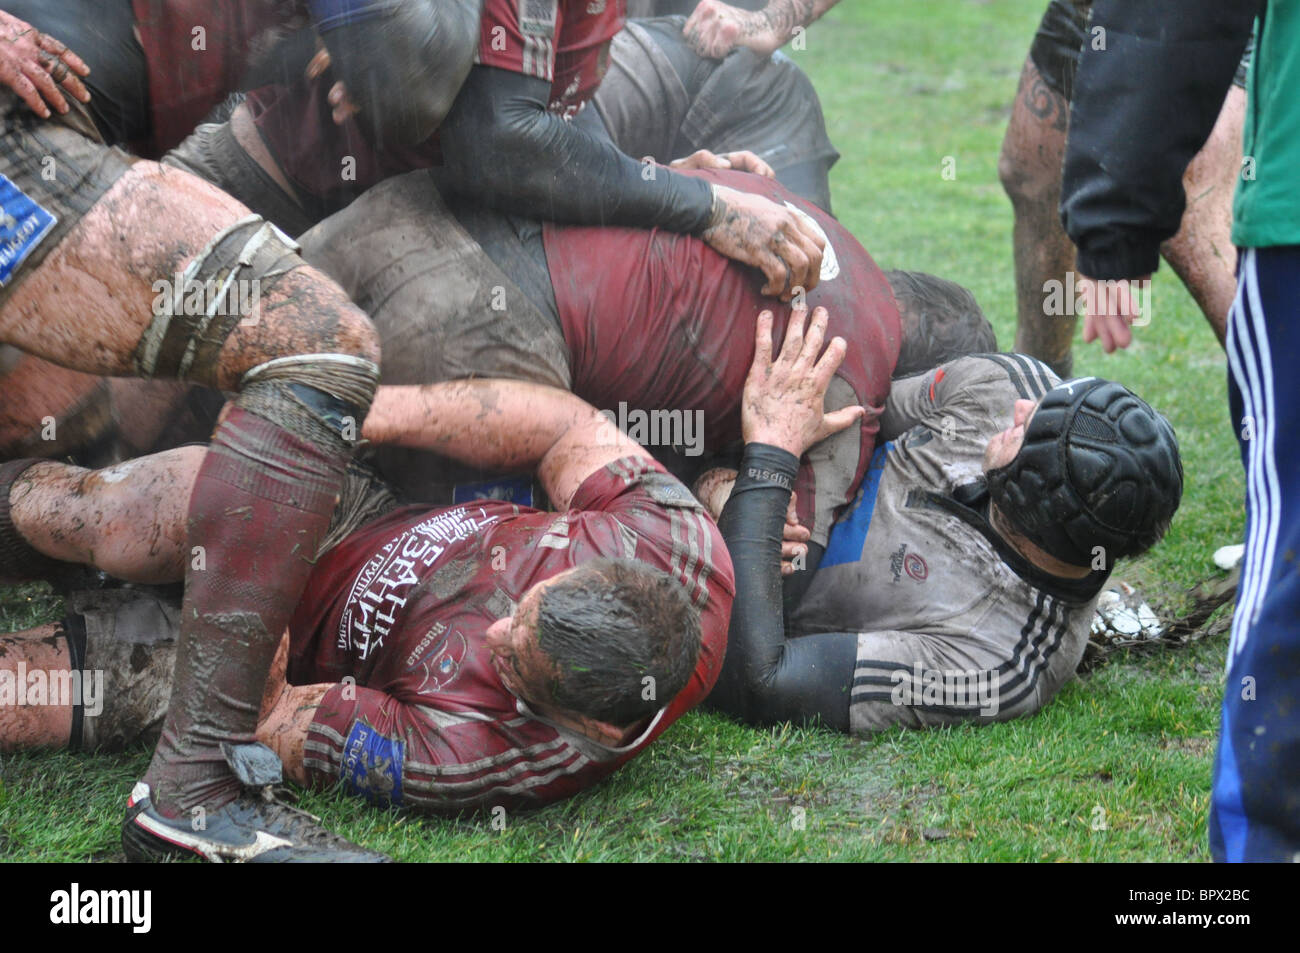 European Nations Cup rugby match: Russia 14 - 10 Portugal - Stock Image